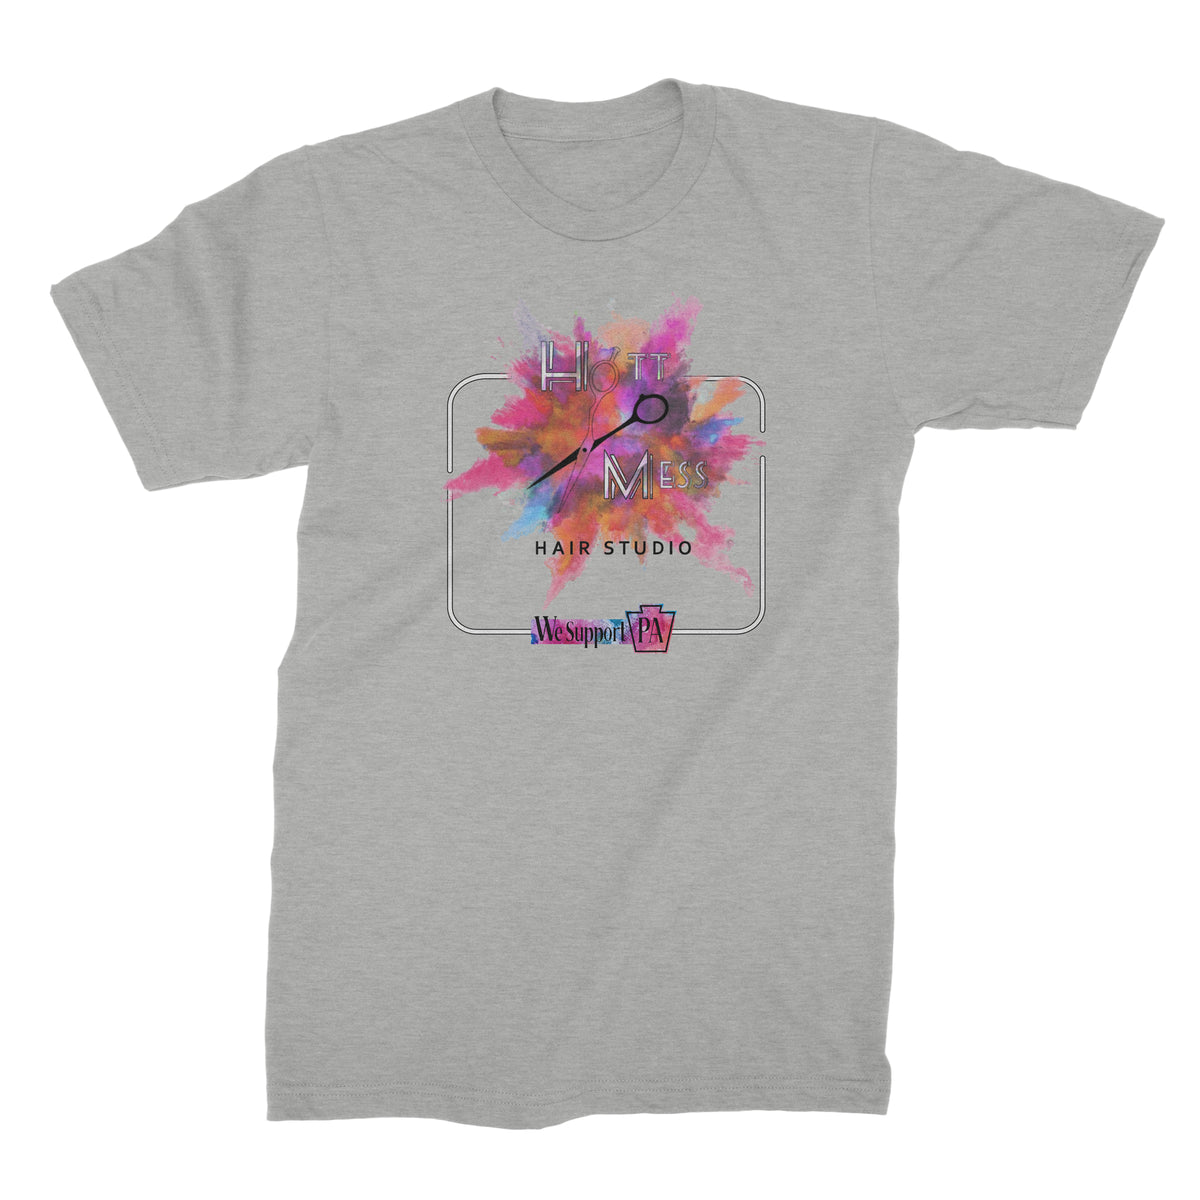 Hot Mess Hair Studio We Support PA T-Shirt